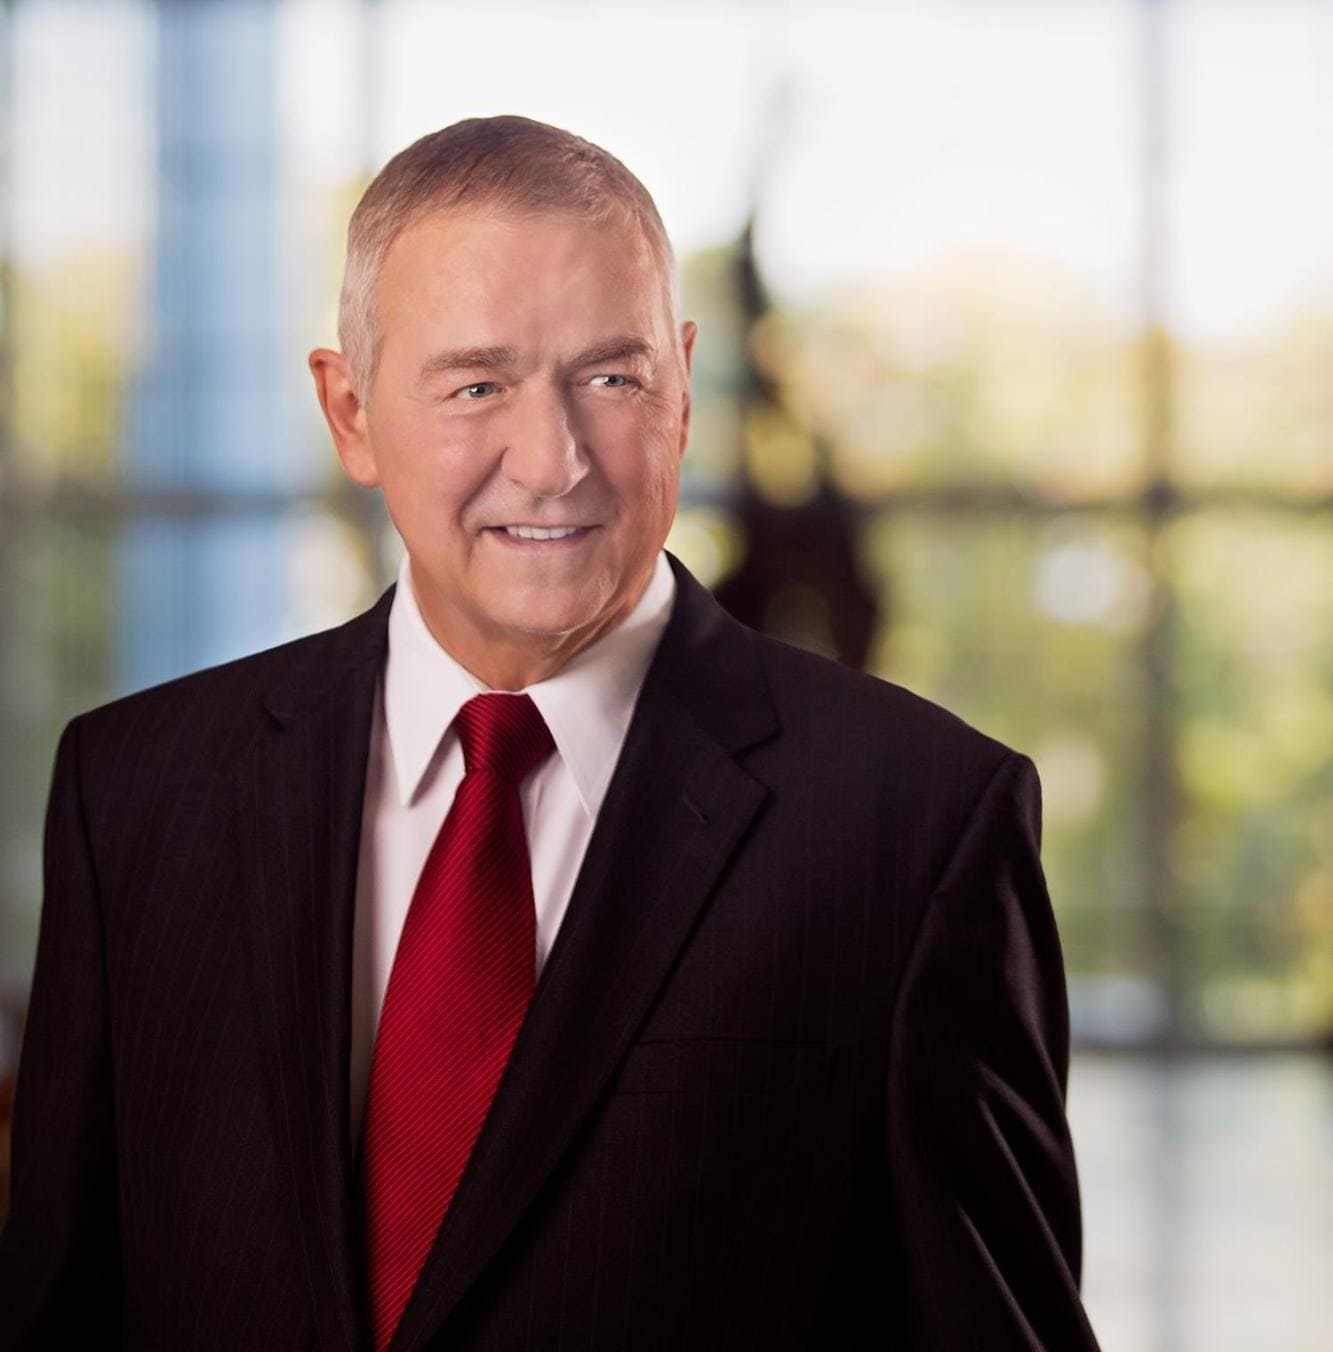 Jim Goodnight, CEO of SAS